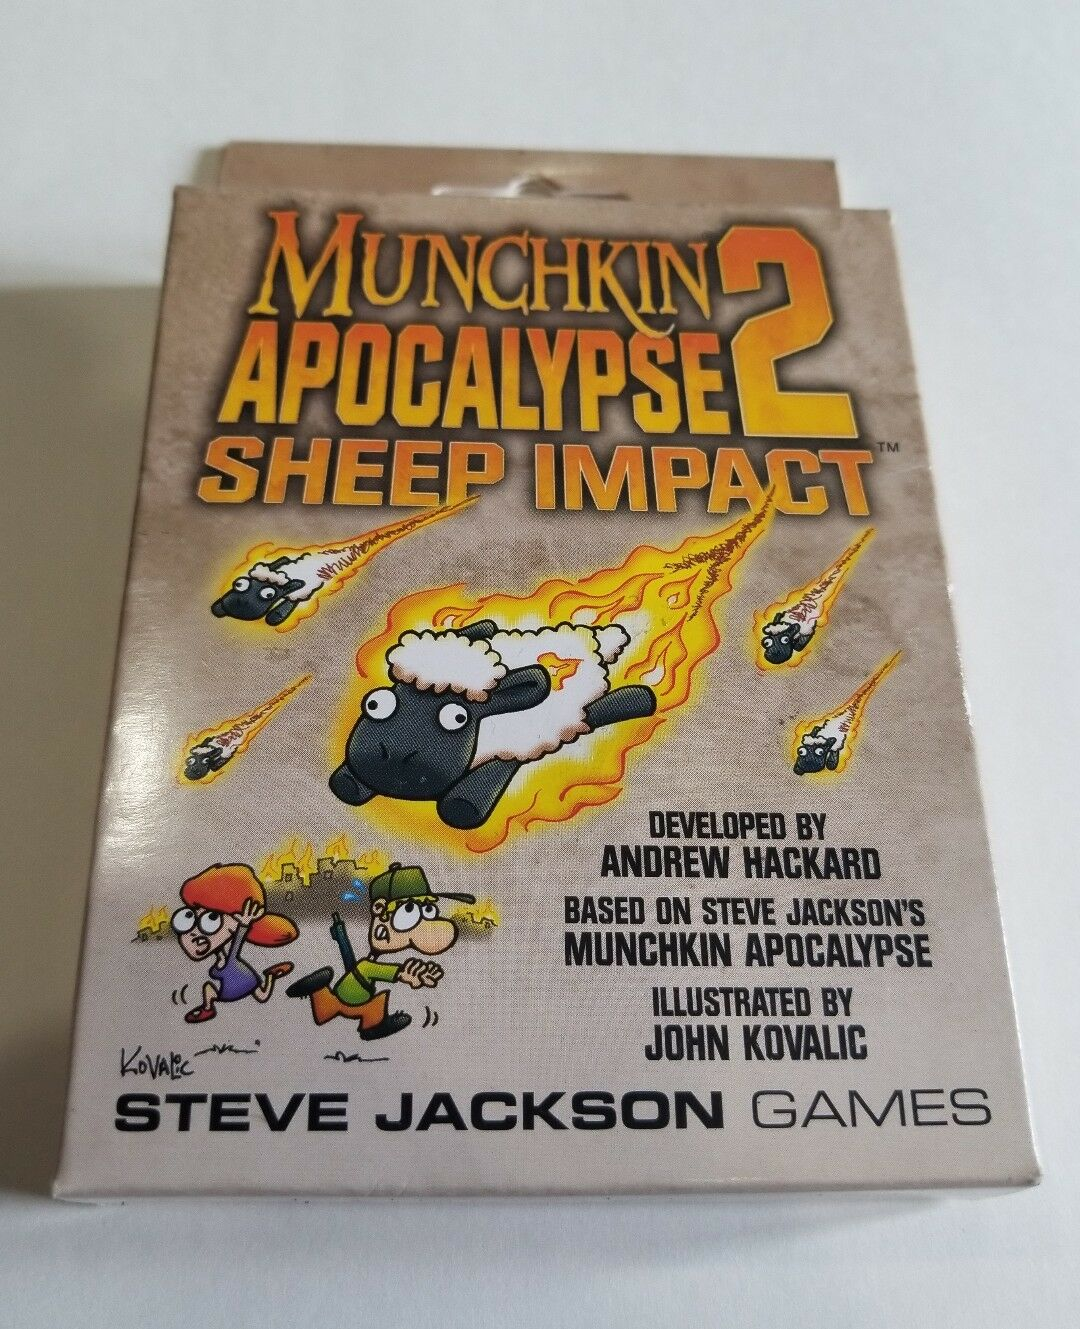 Munchkin Apocalypse 2 Sheep Impact Card Game Expansion From Steve Jackson Games